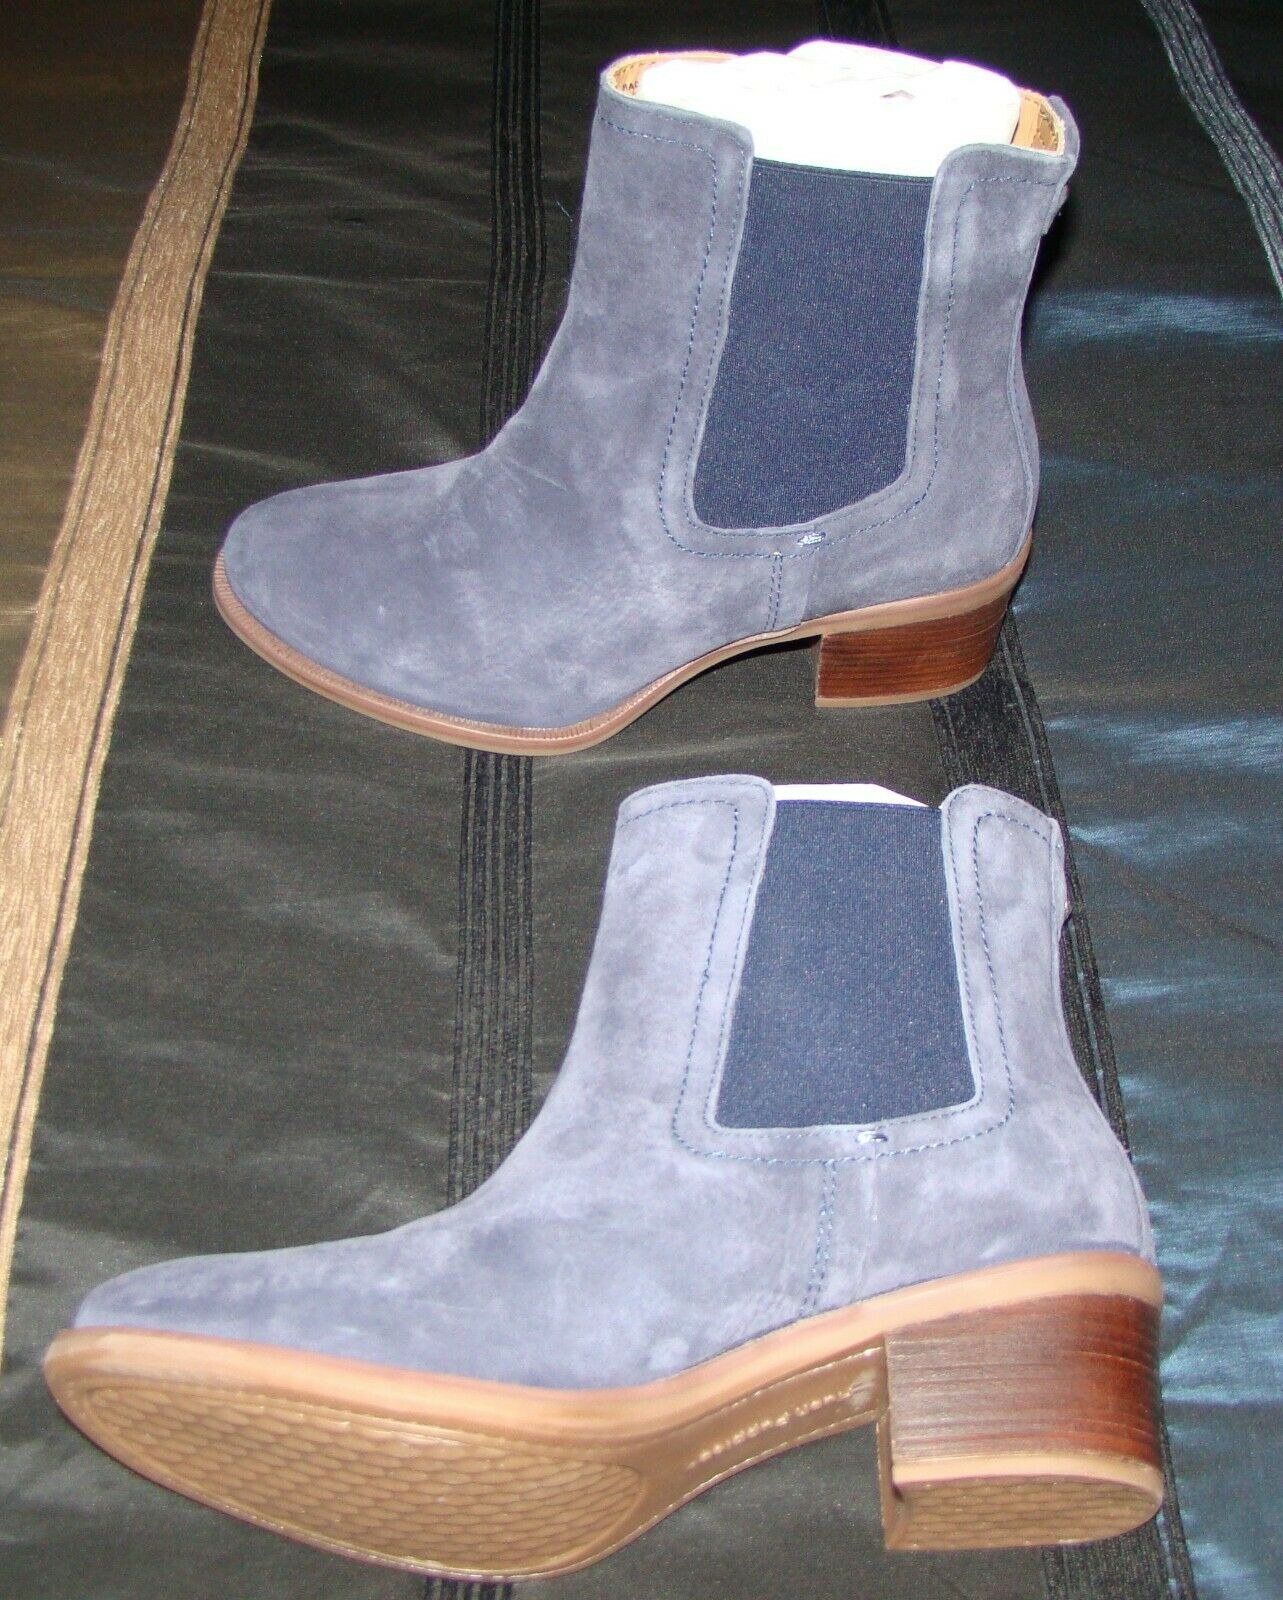 Hush Puppies Landa Nellie Women's Pull‑On Ankle Boots - US Size 8.5 M, Navy